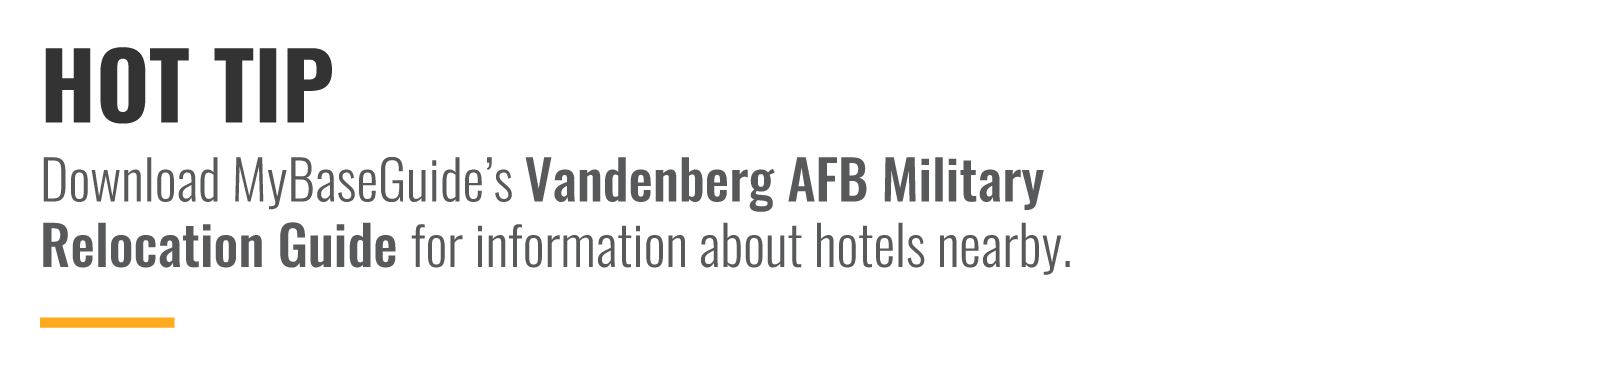 Download Vandenberg AFB Military Relocation Guide for information about hotels nearby.